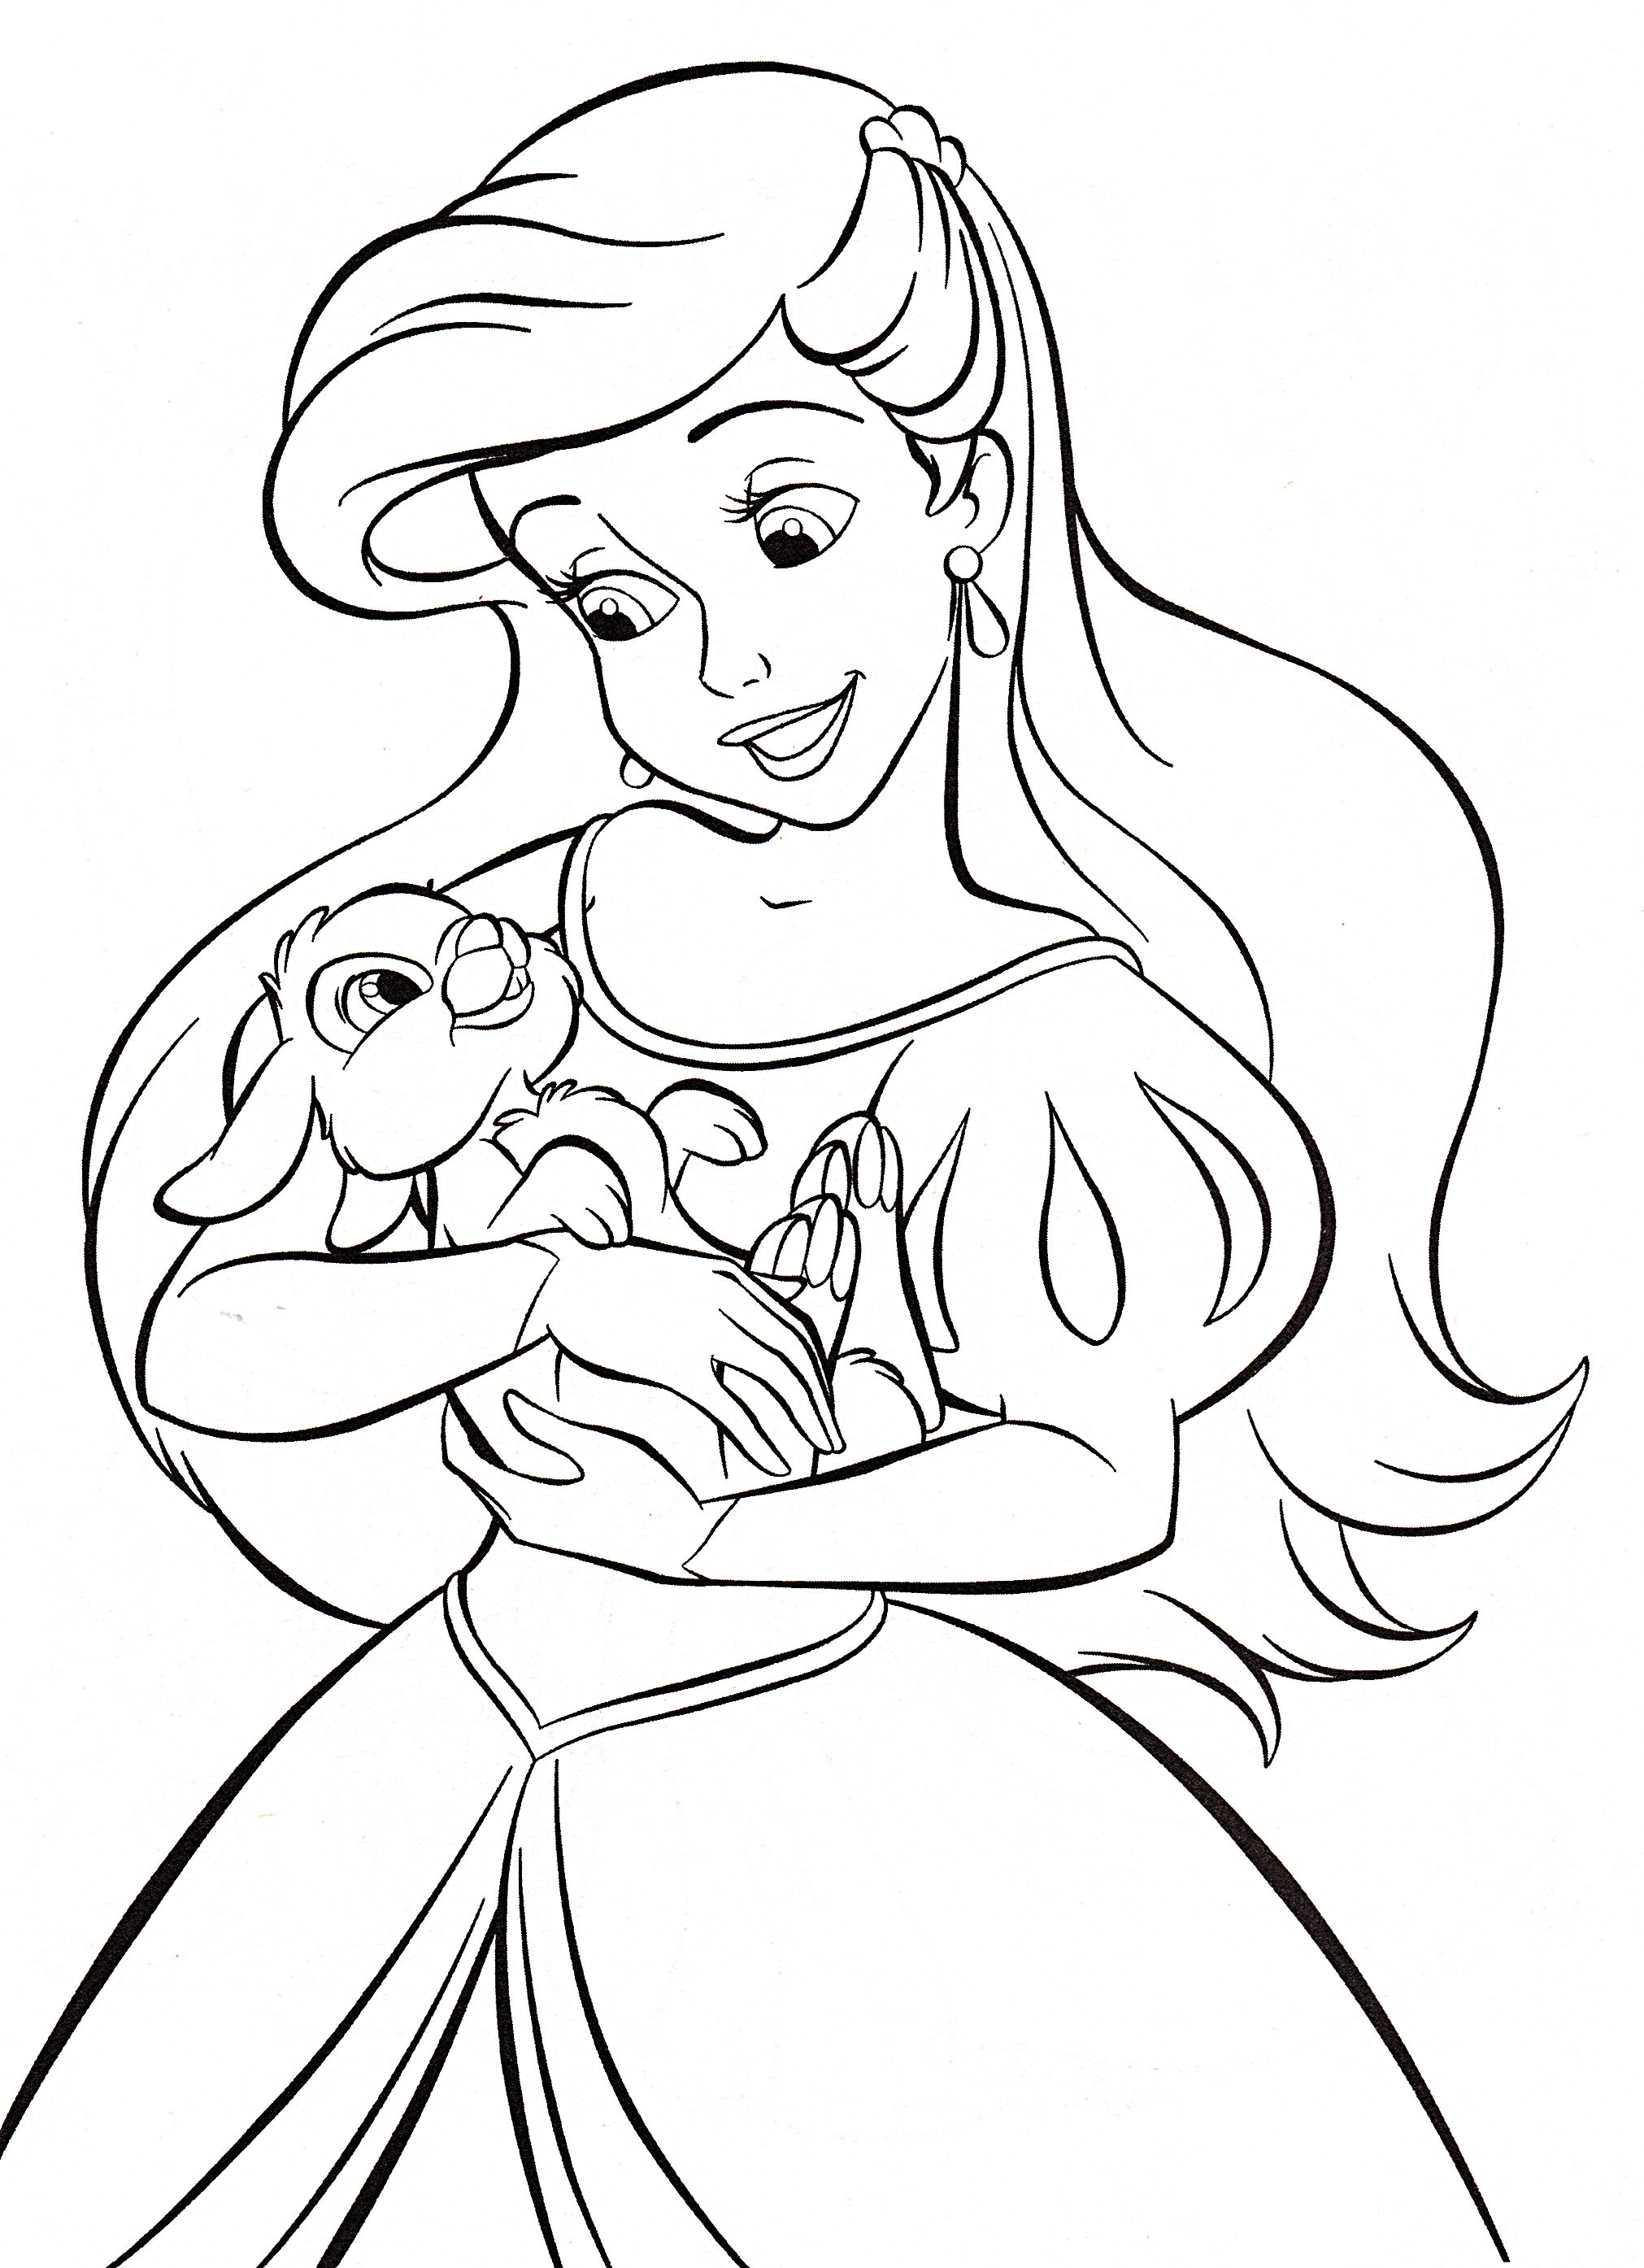 Walt Disney Coloring Pages Princess Ariel Walt Disney | Coloring ...